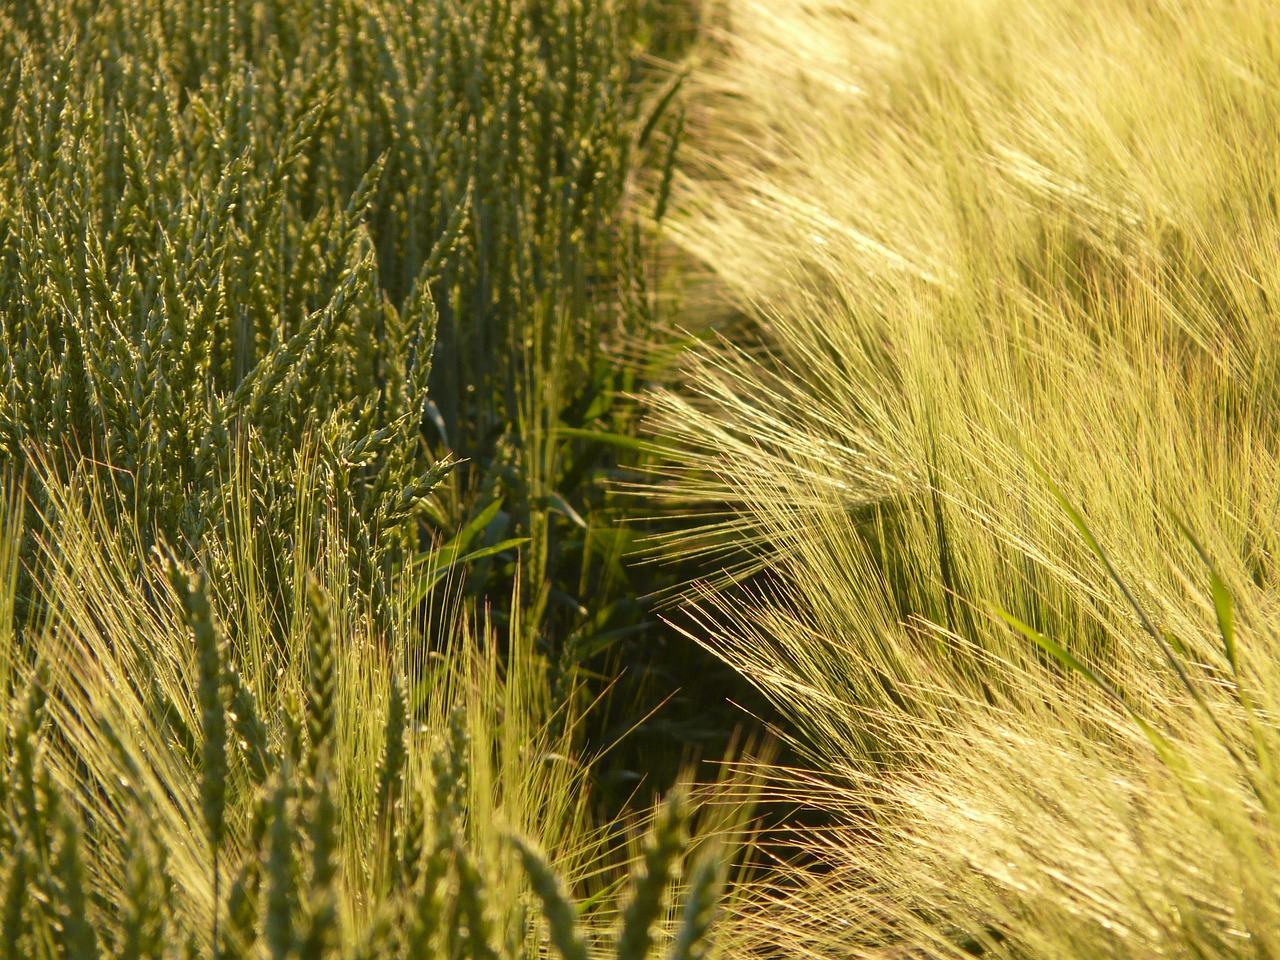 wheat wheat field wheat spike free photo